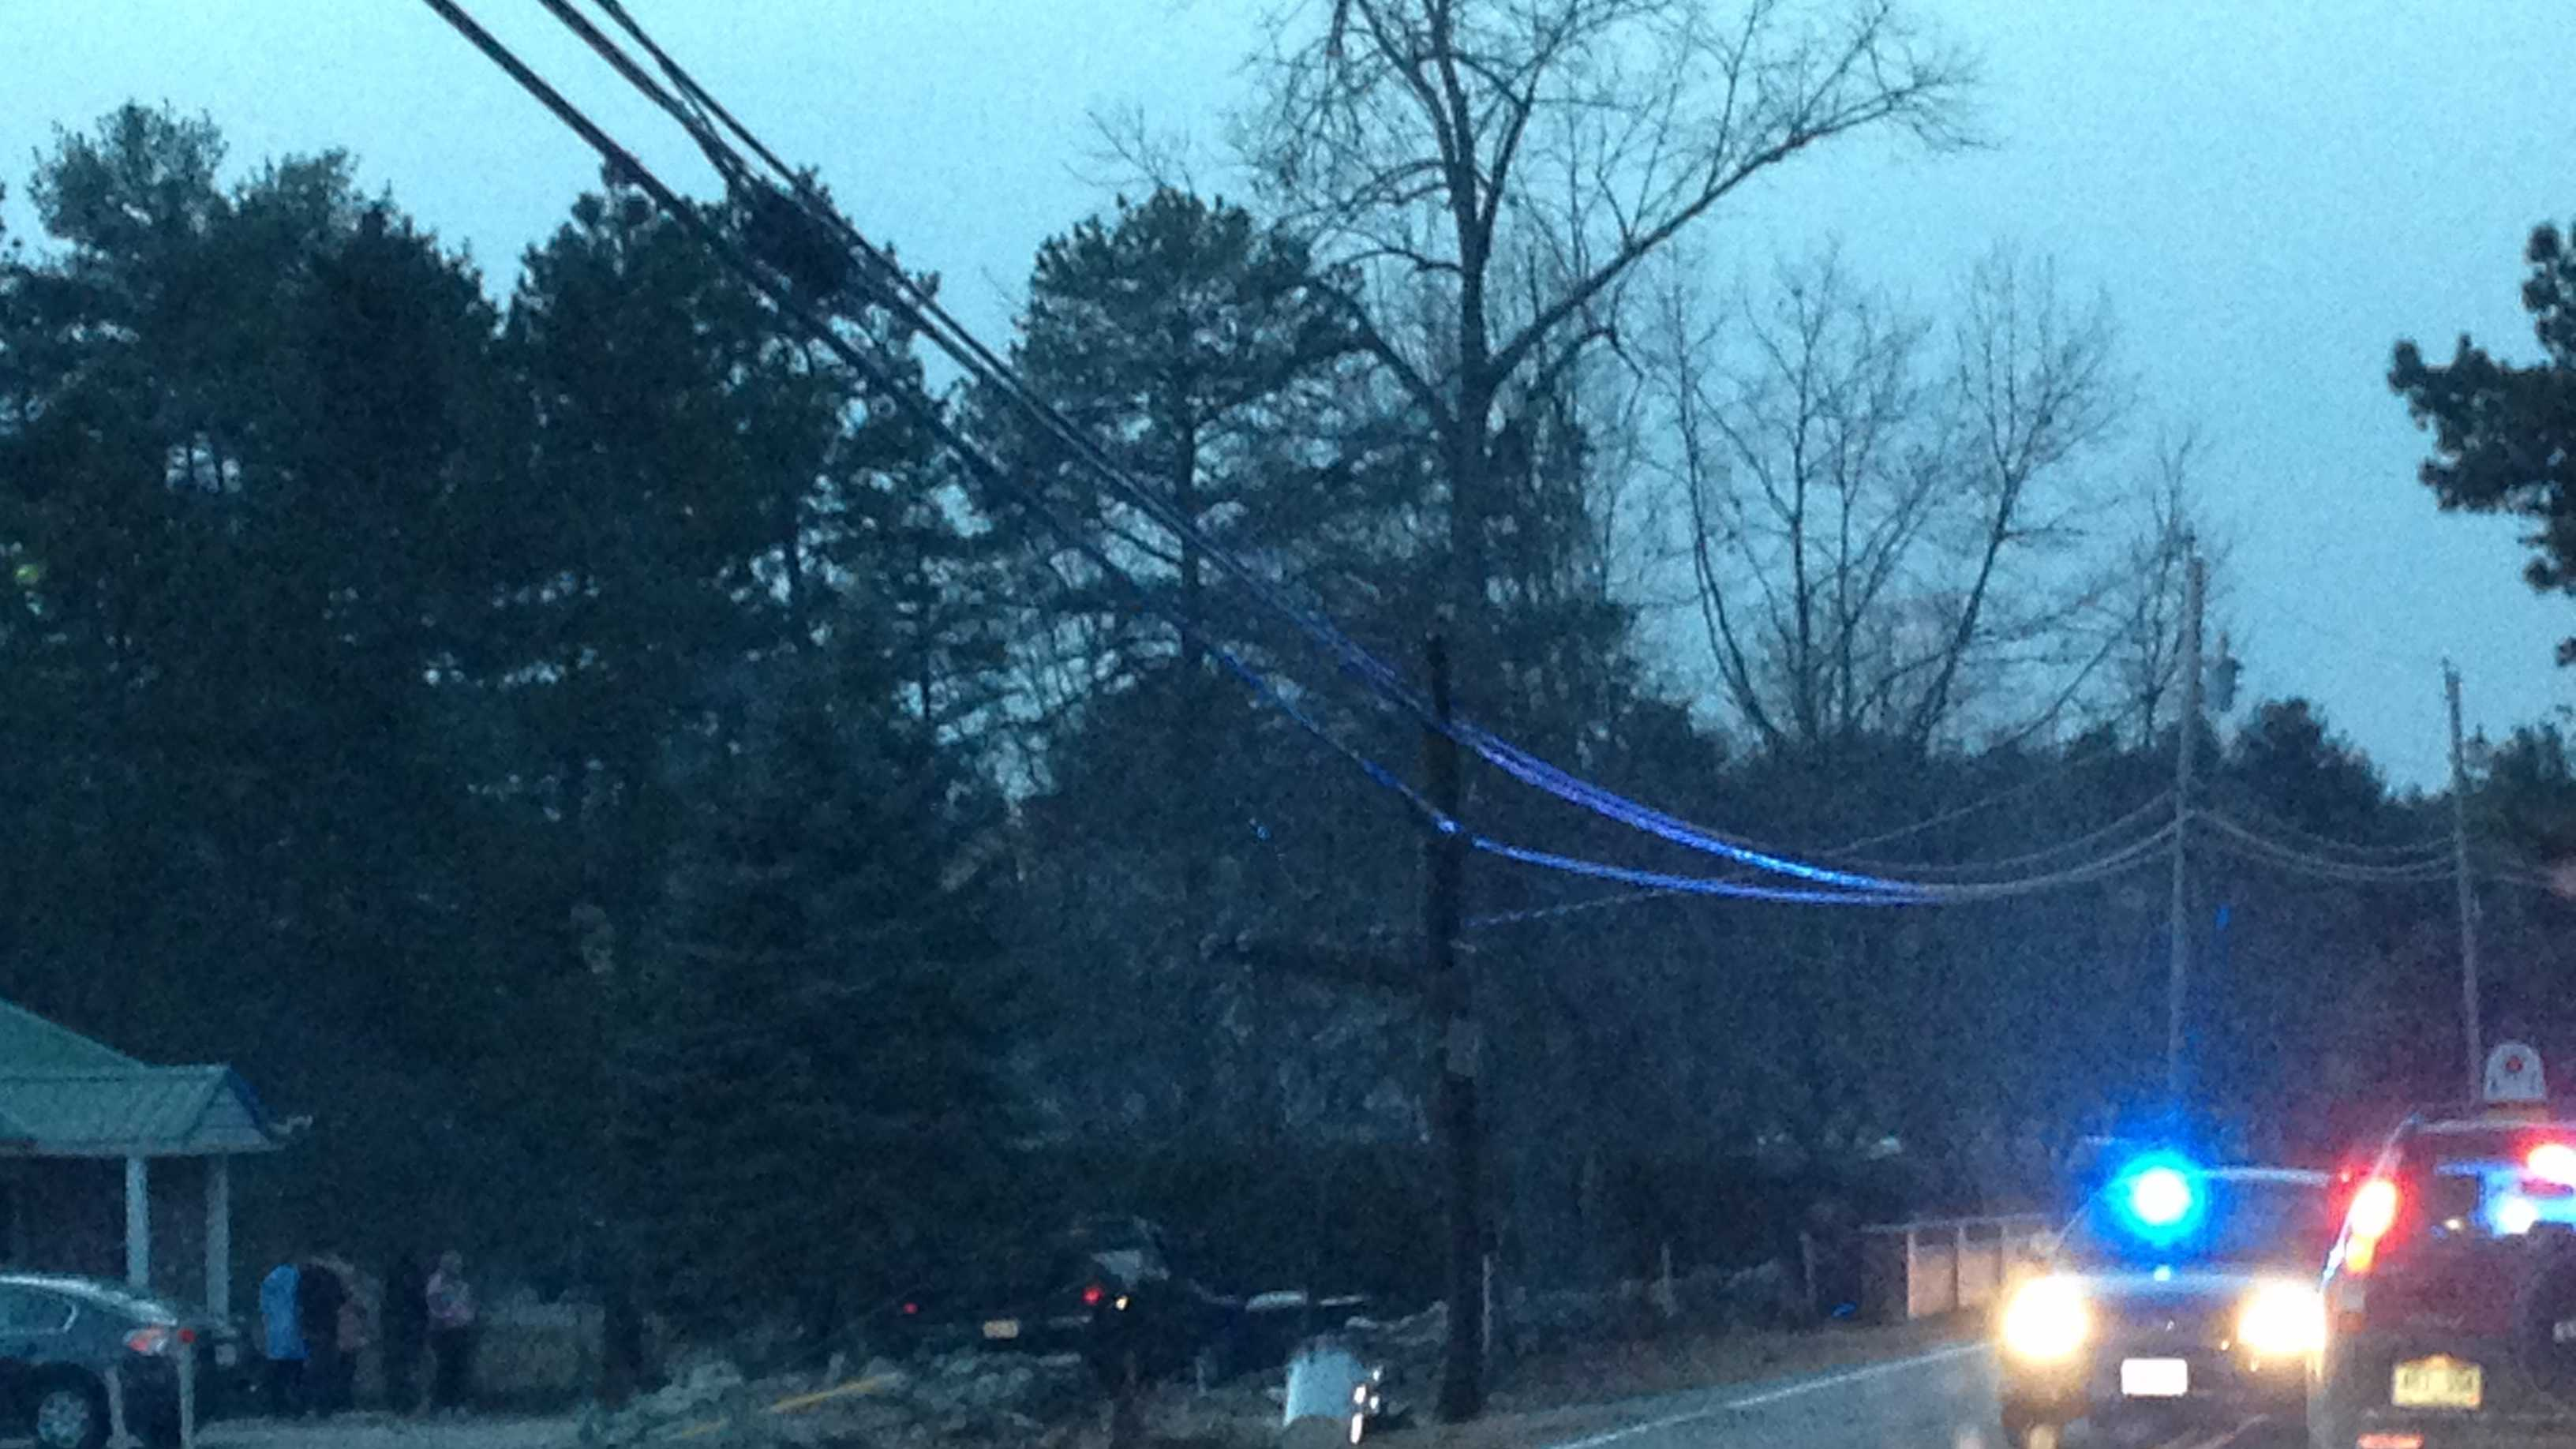 Accident closes down Goffstown Back Road